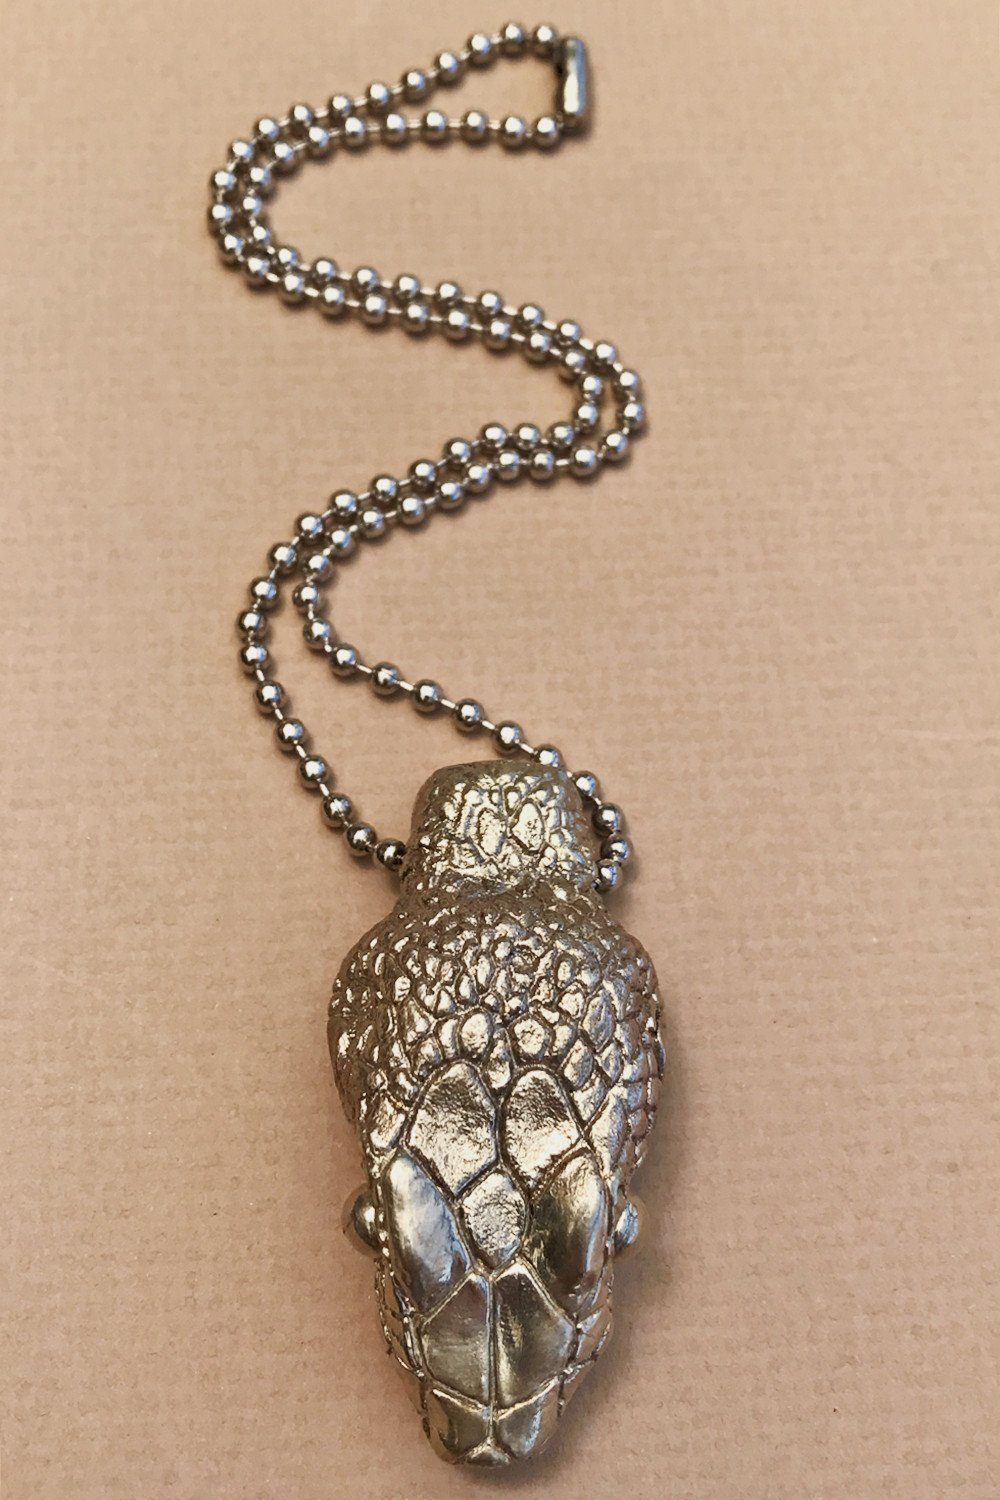 PRE-ORDER Serpents Rise Talisman: Solid White Bronze Snake Head Pendant On Ball Chain by Cult Sisters, Accessories, cult sisters, BACKBITE